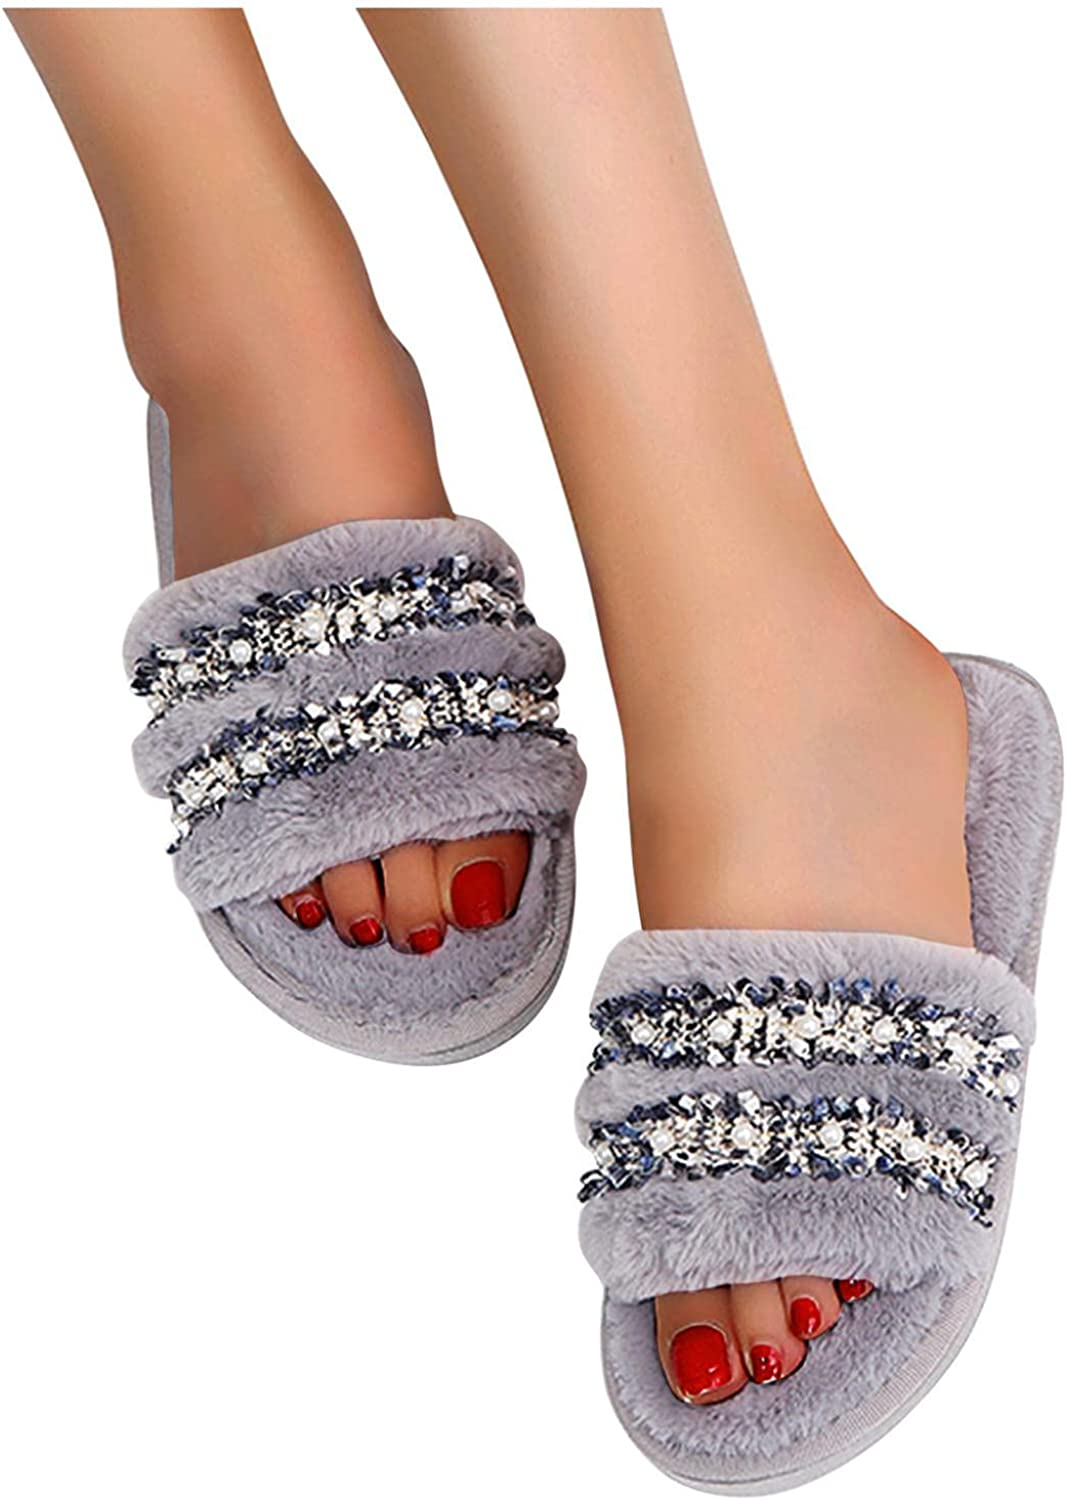 Gibobby Slippers for Women Women Memory Foam Slippers Fur Fuzzy Slippers Warm Casual House Slippers Indoor Outdoor Shoes